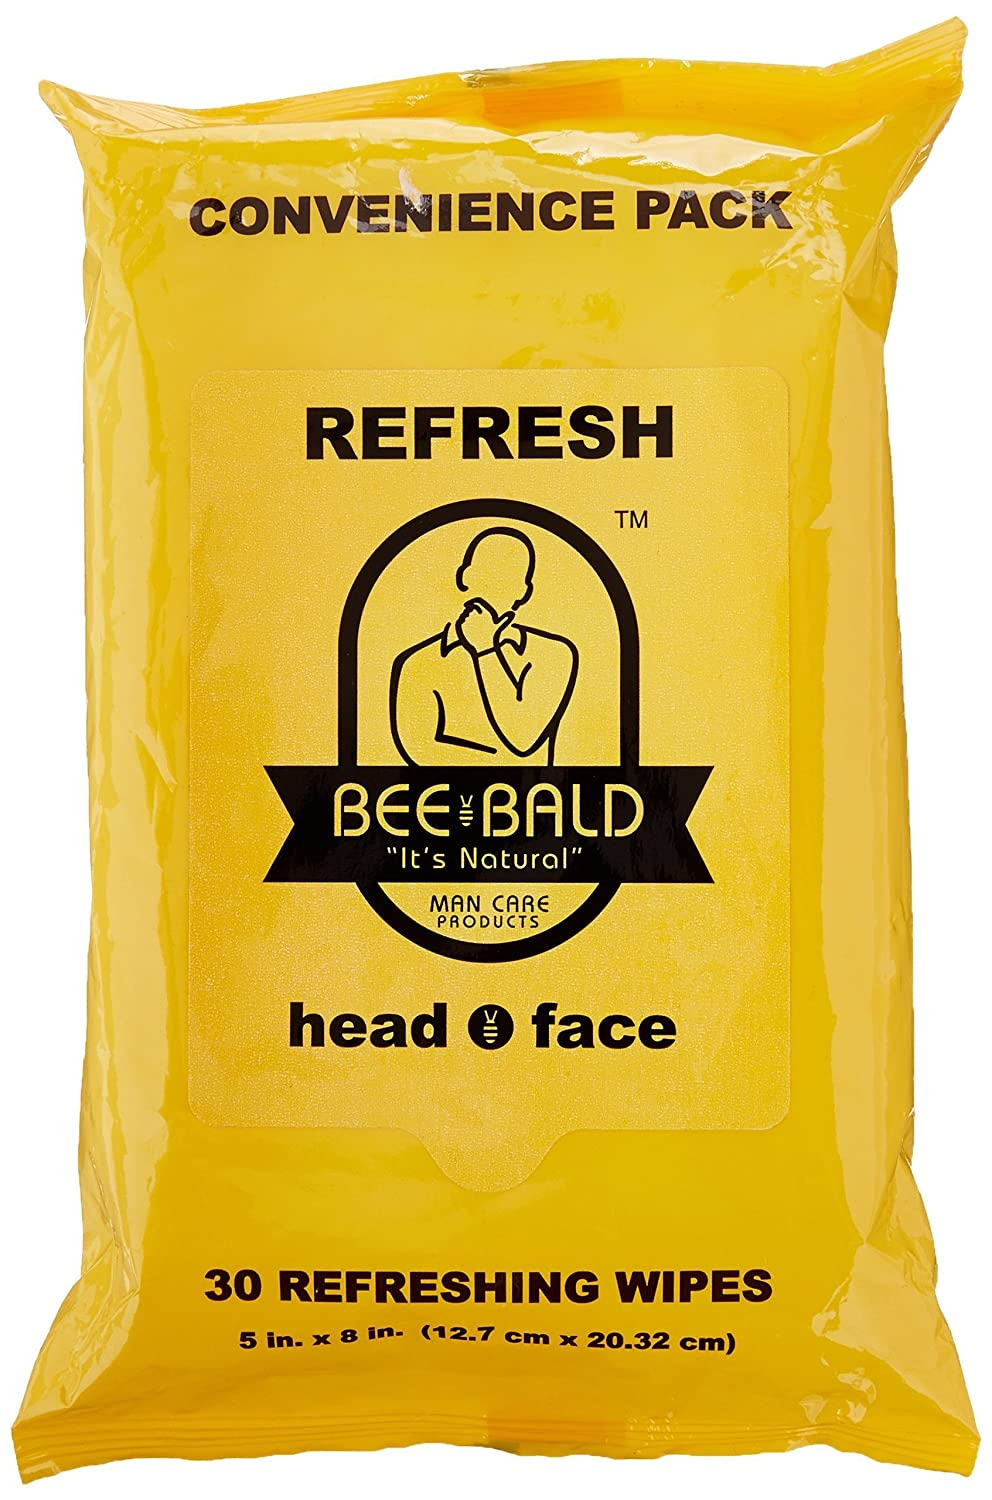 Bee B014E9JBN4 Bee Bald Refresh Bald Head and Face Wipes 30 wipes by Bee Bald B014E9JBN4, 伊勢志摩の真珠専門店 IsowaPearl:fc142228 --- ijpba.info